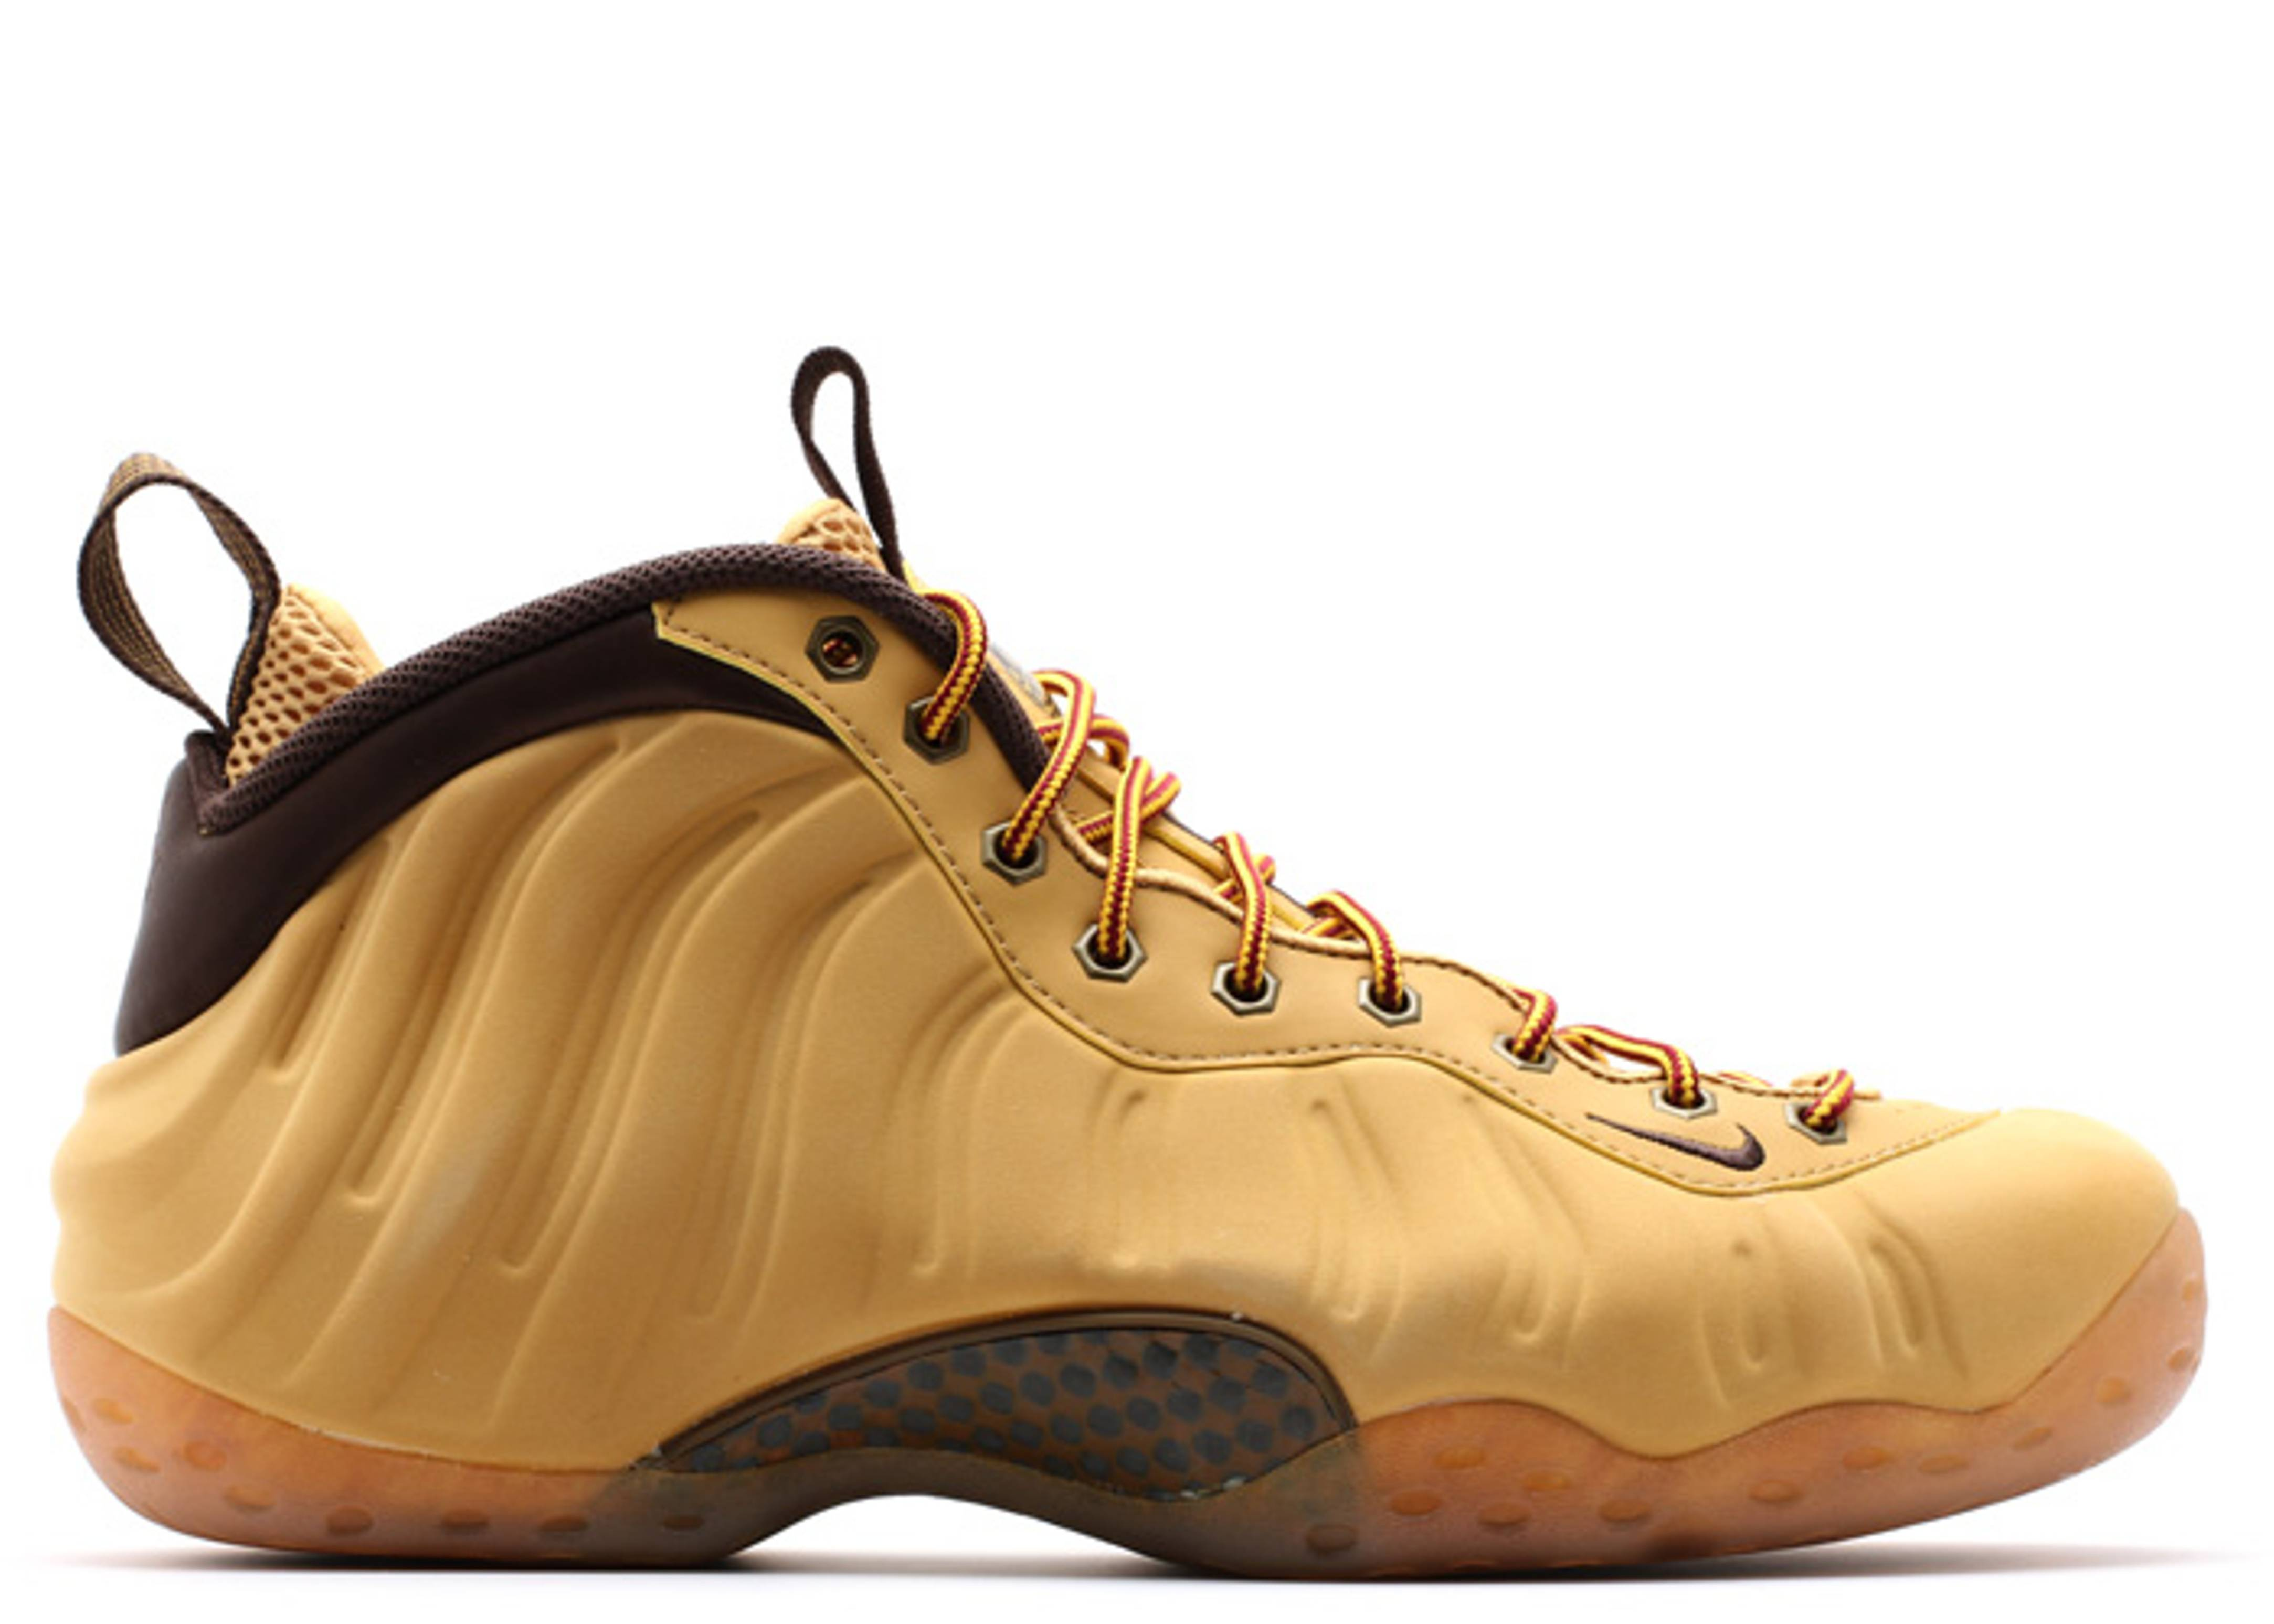 separation shoes 75bf0 63551 nike. air foamposite one prm